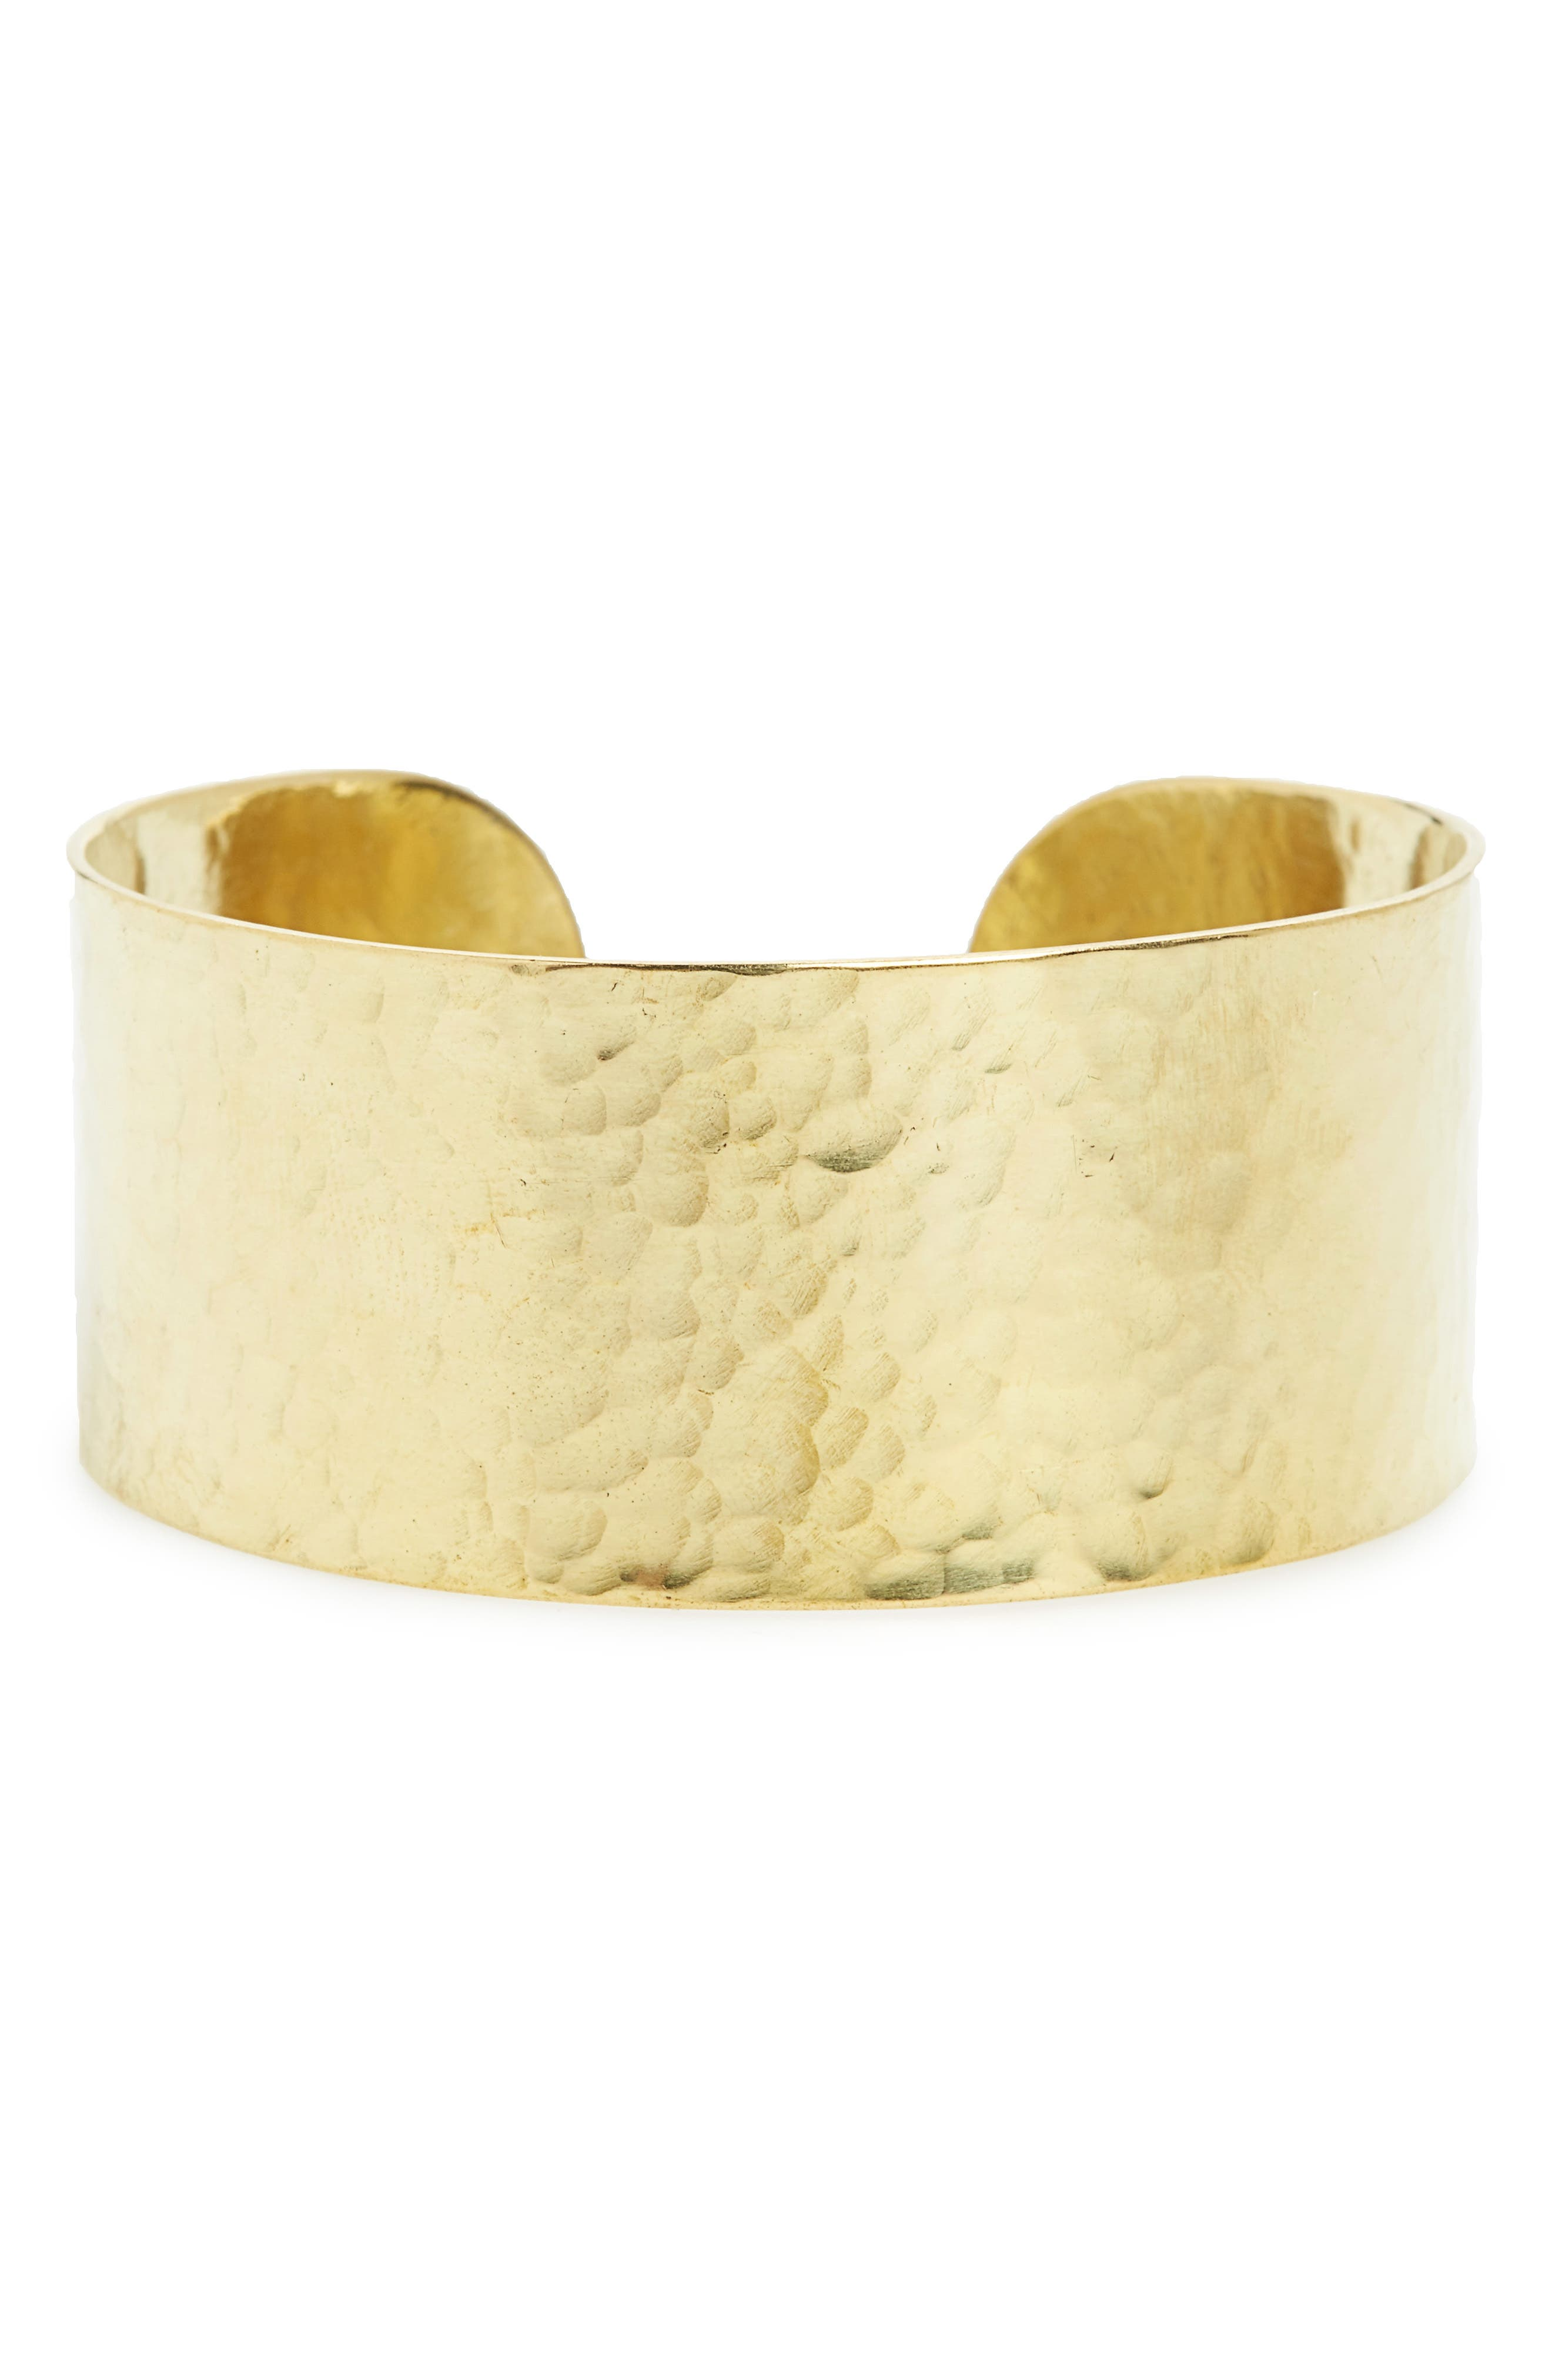 Hammered Brass Cuff,                             Main thumbnail 1, color,                             200